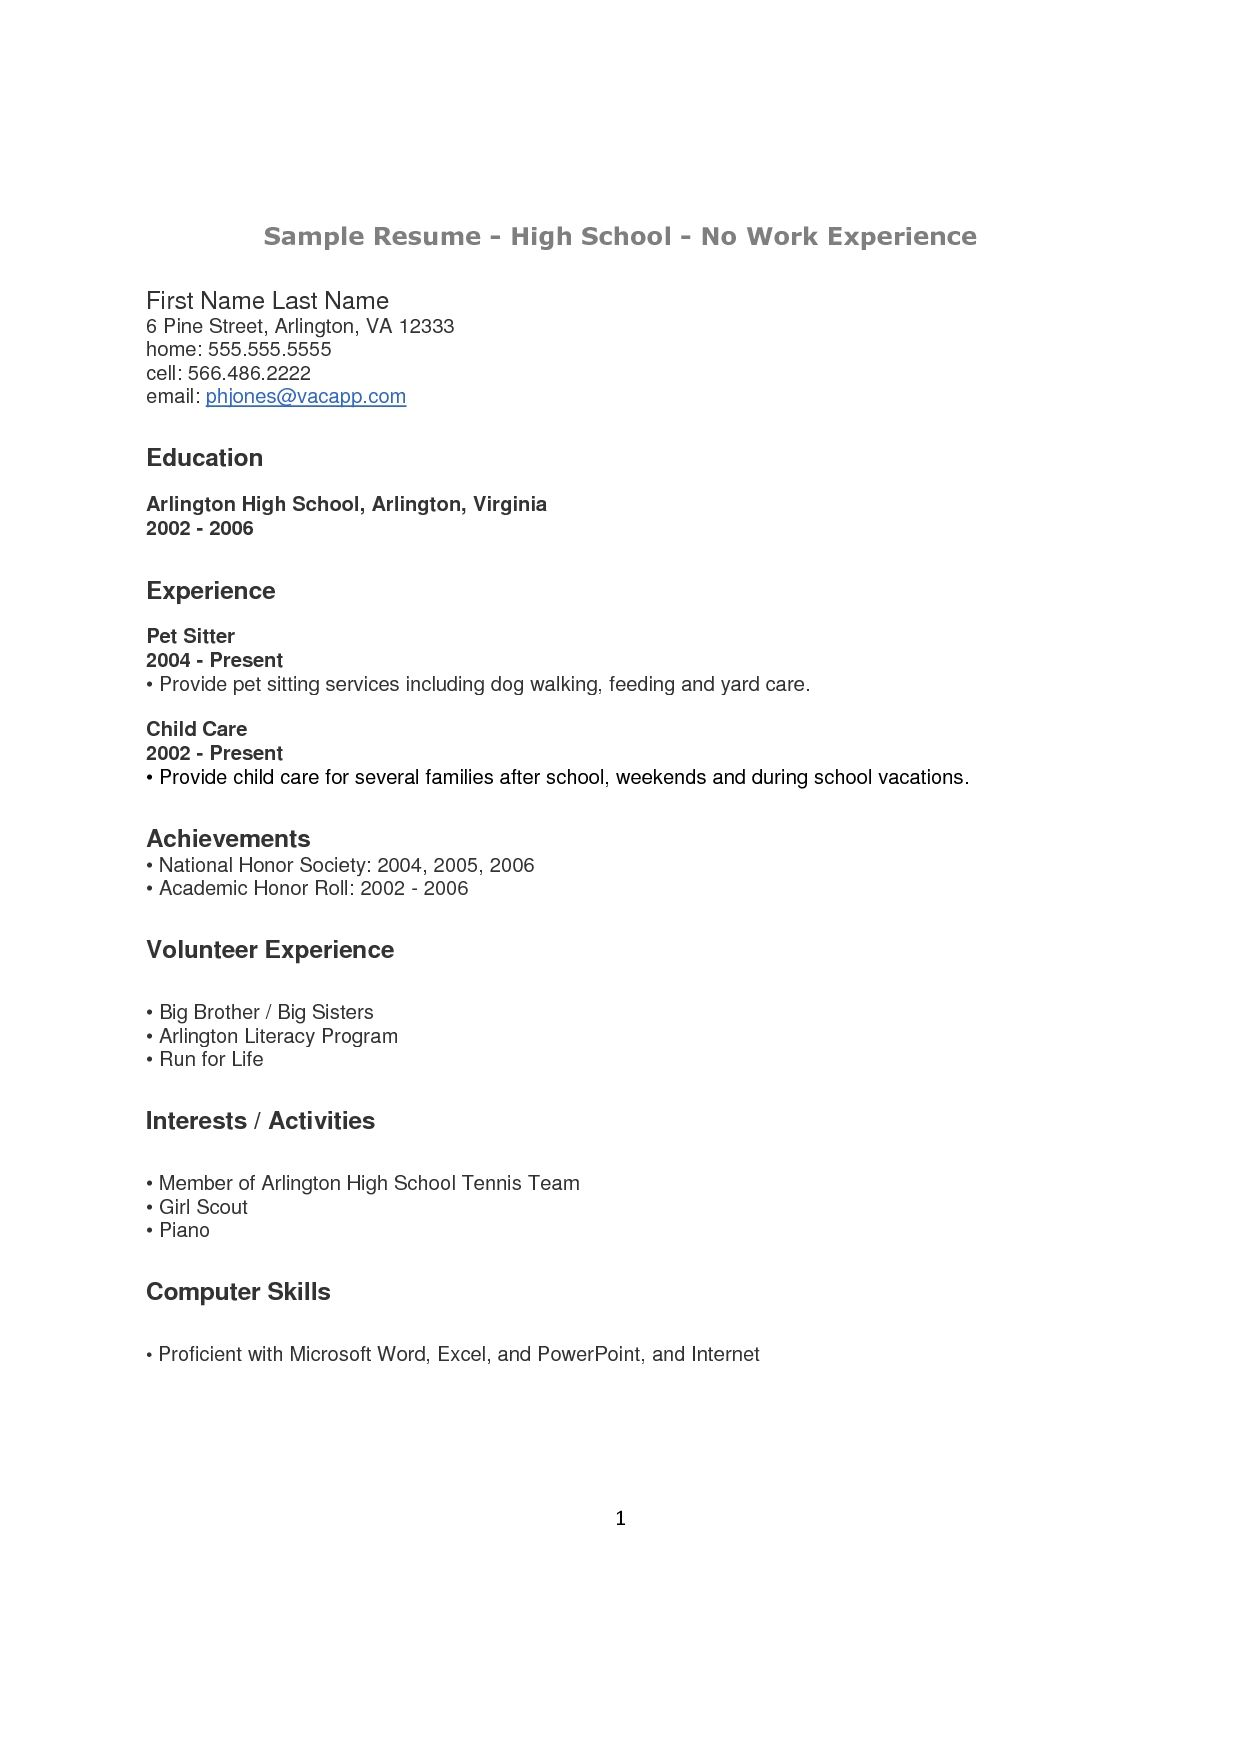 Resume For Highschool Graduates With No Work Experience Resume Sample